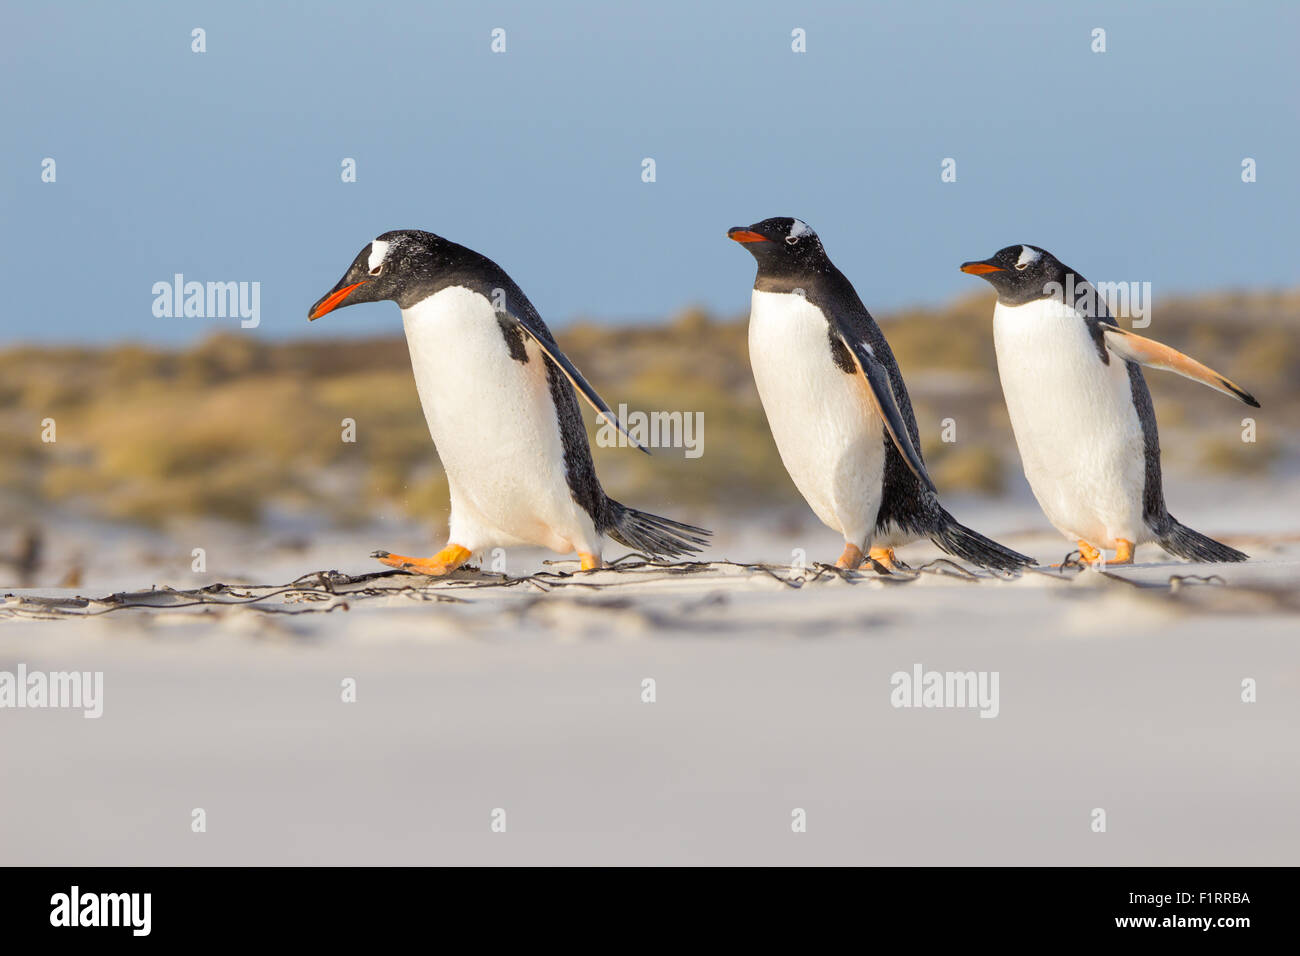 Trio of Gentoo Penguins taking a stroll on the beach. Falkland Islands. - Stock Image